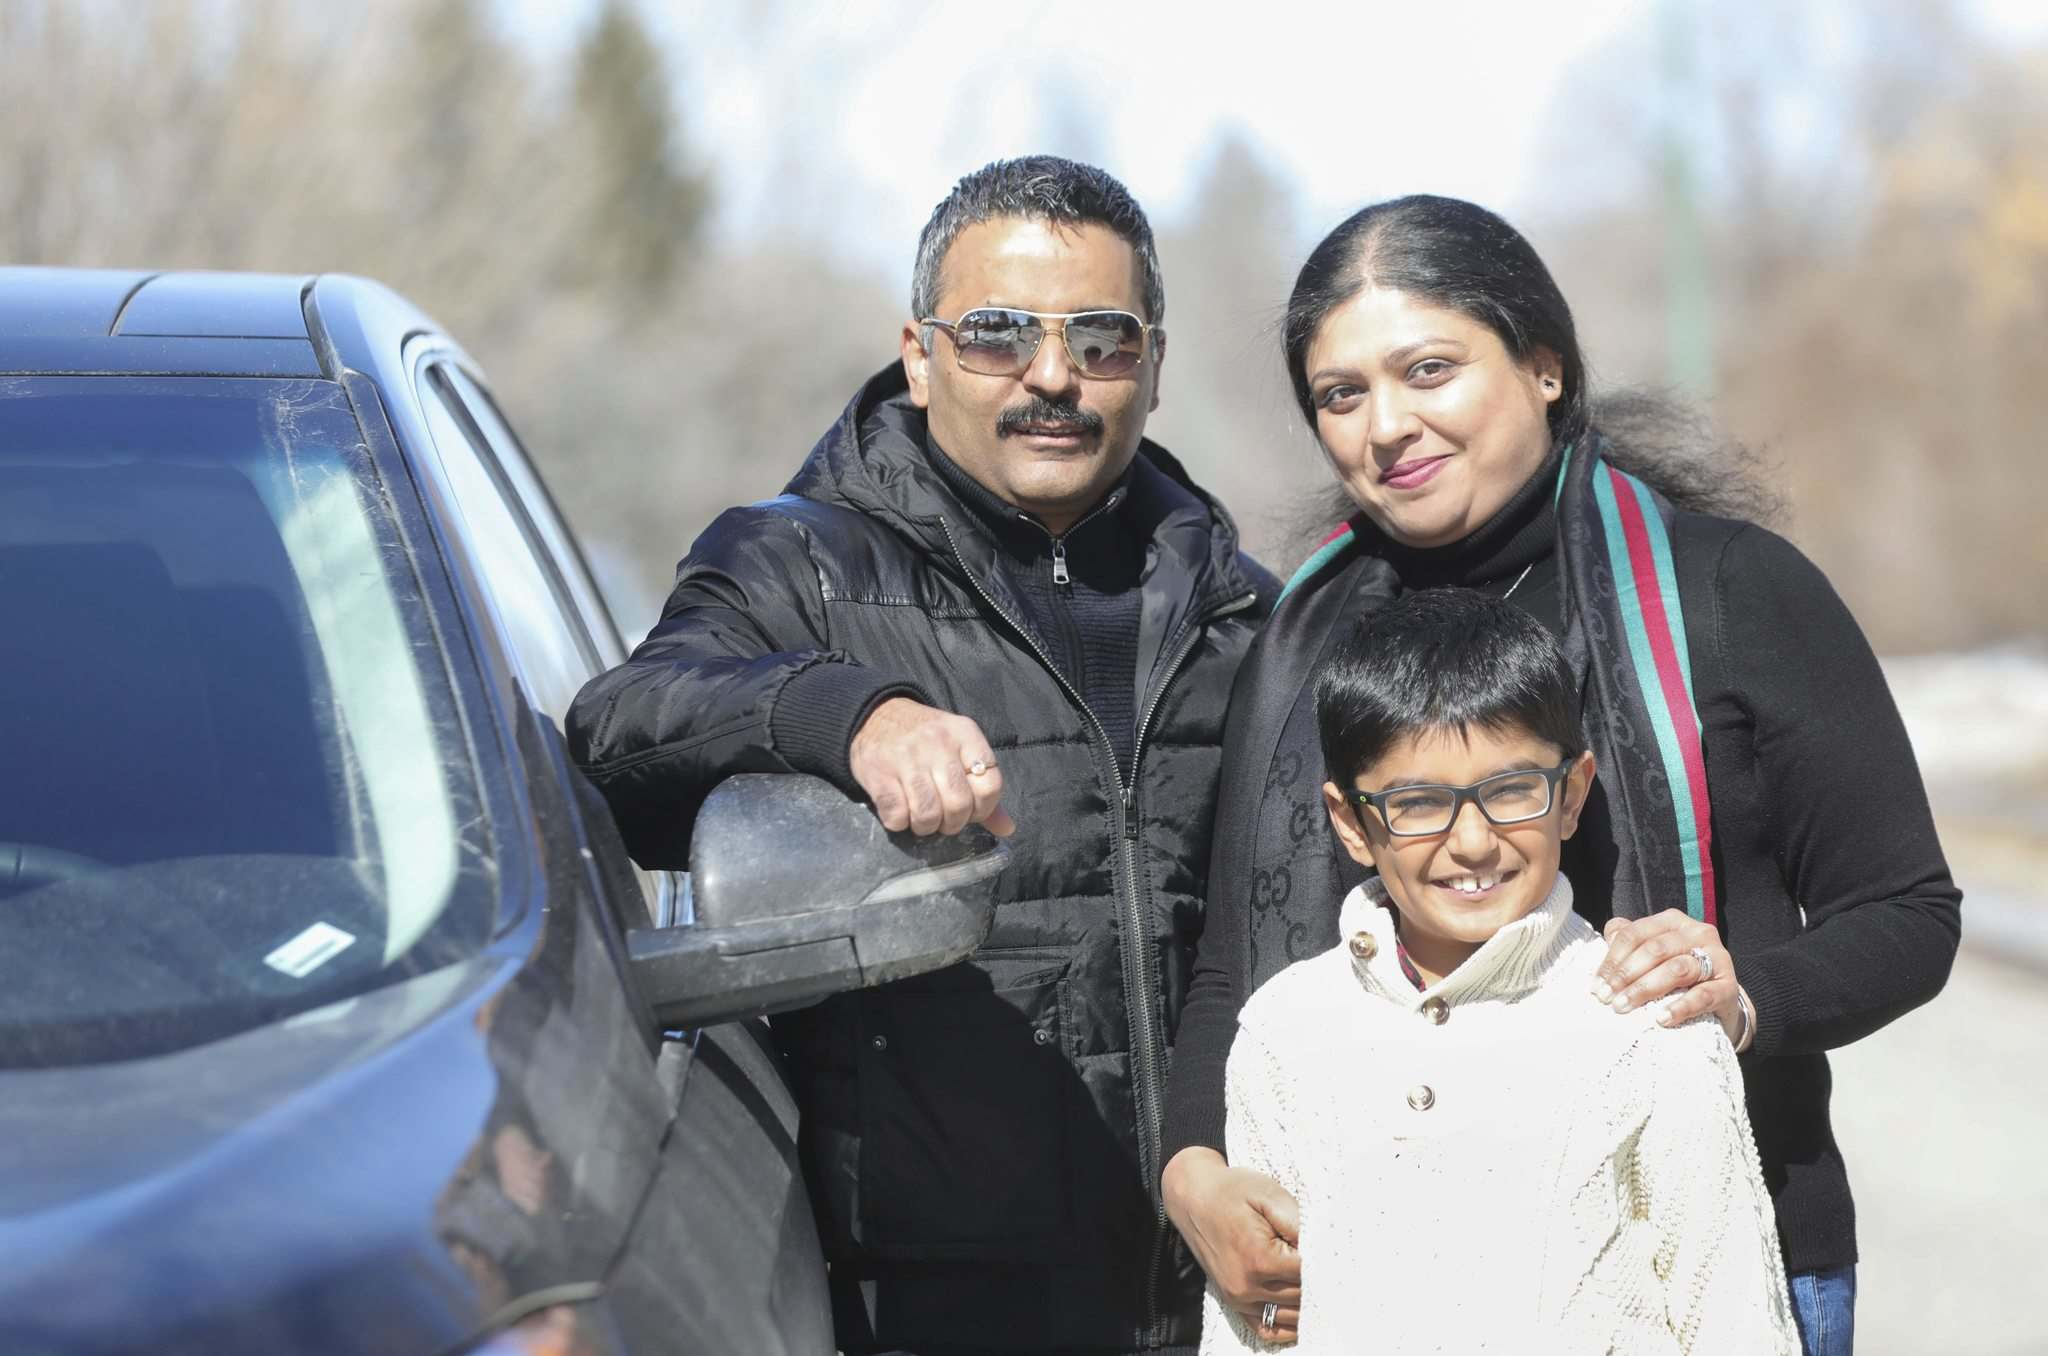 RUTH BONNEVILLE / WINNIPEG FREE PRESS</p><p>Rashmi Saxena (right), husband Ankur Aneja, and son Kabir, moved to Winnipeg in January. Saxena has established We Got This — Winnipeg, a Facebook group that helps connect people with assistance during the COVID-19 pandemic.</p>